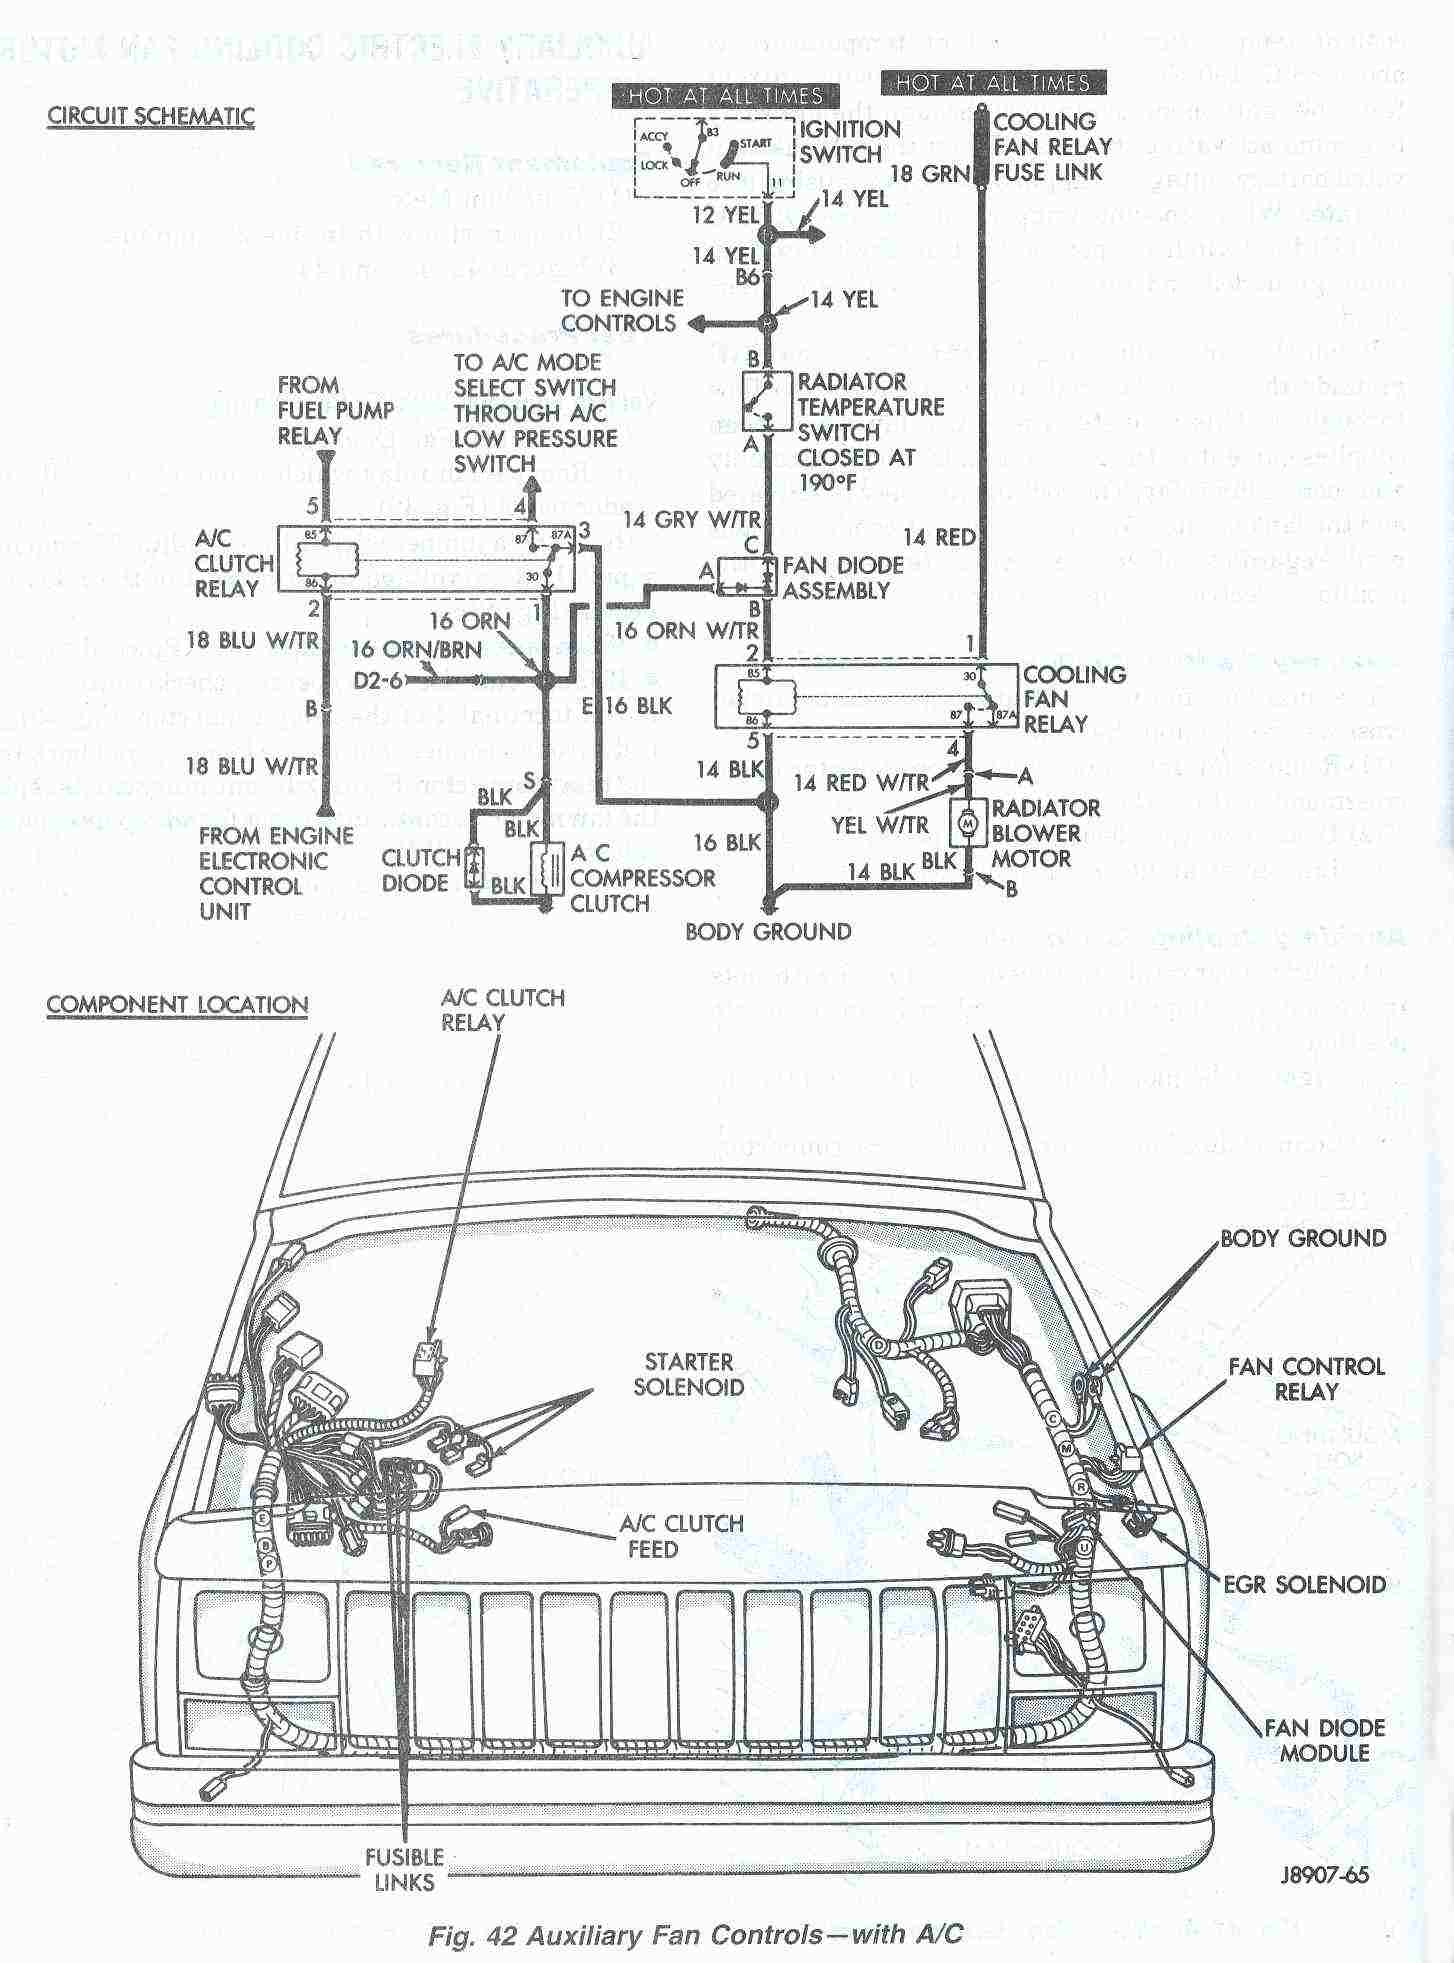 98DE 2007 Jeep Grand Cherokee Tail Light Wiring Diagram | Wiring ResourcesWiring Resources